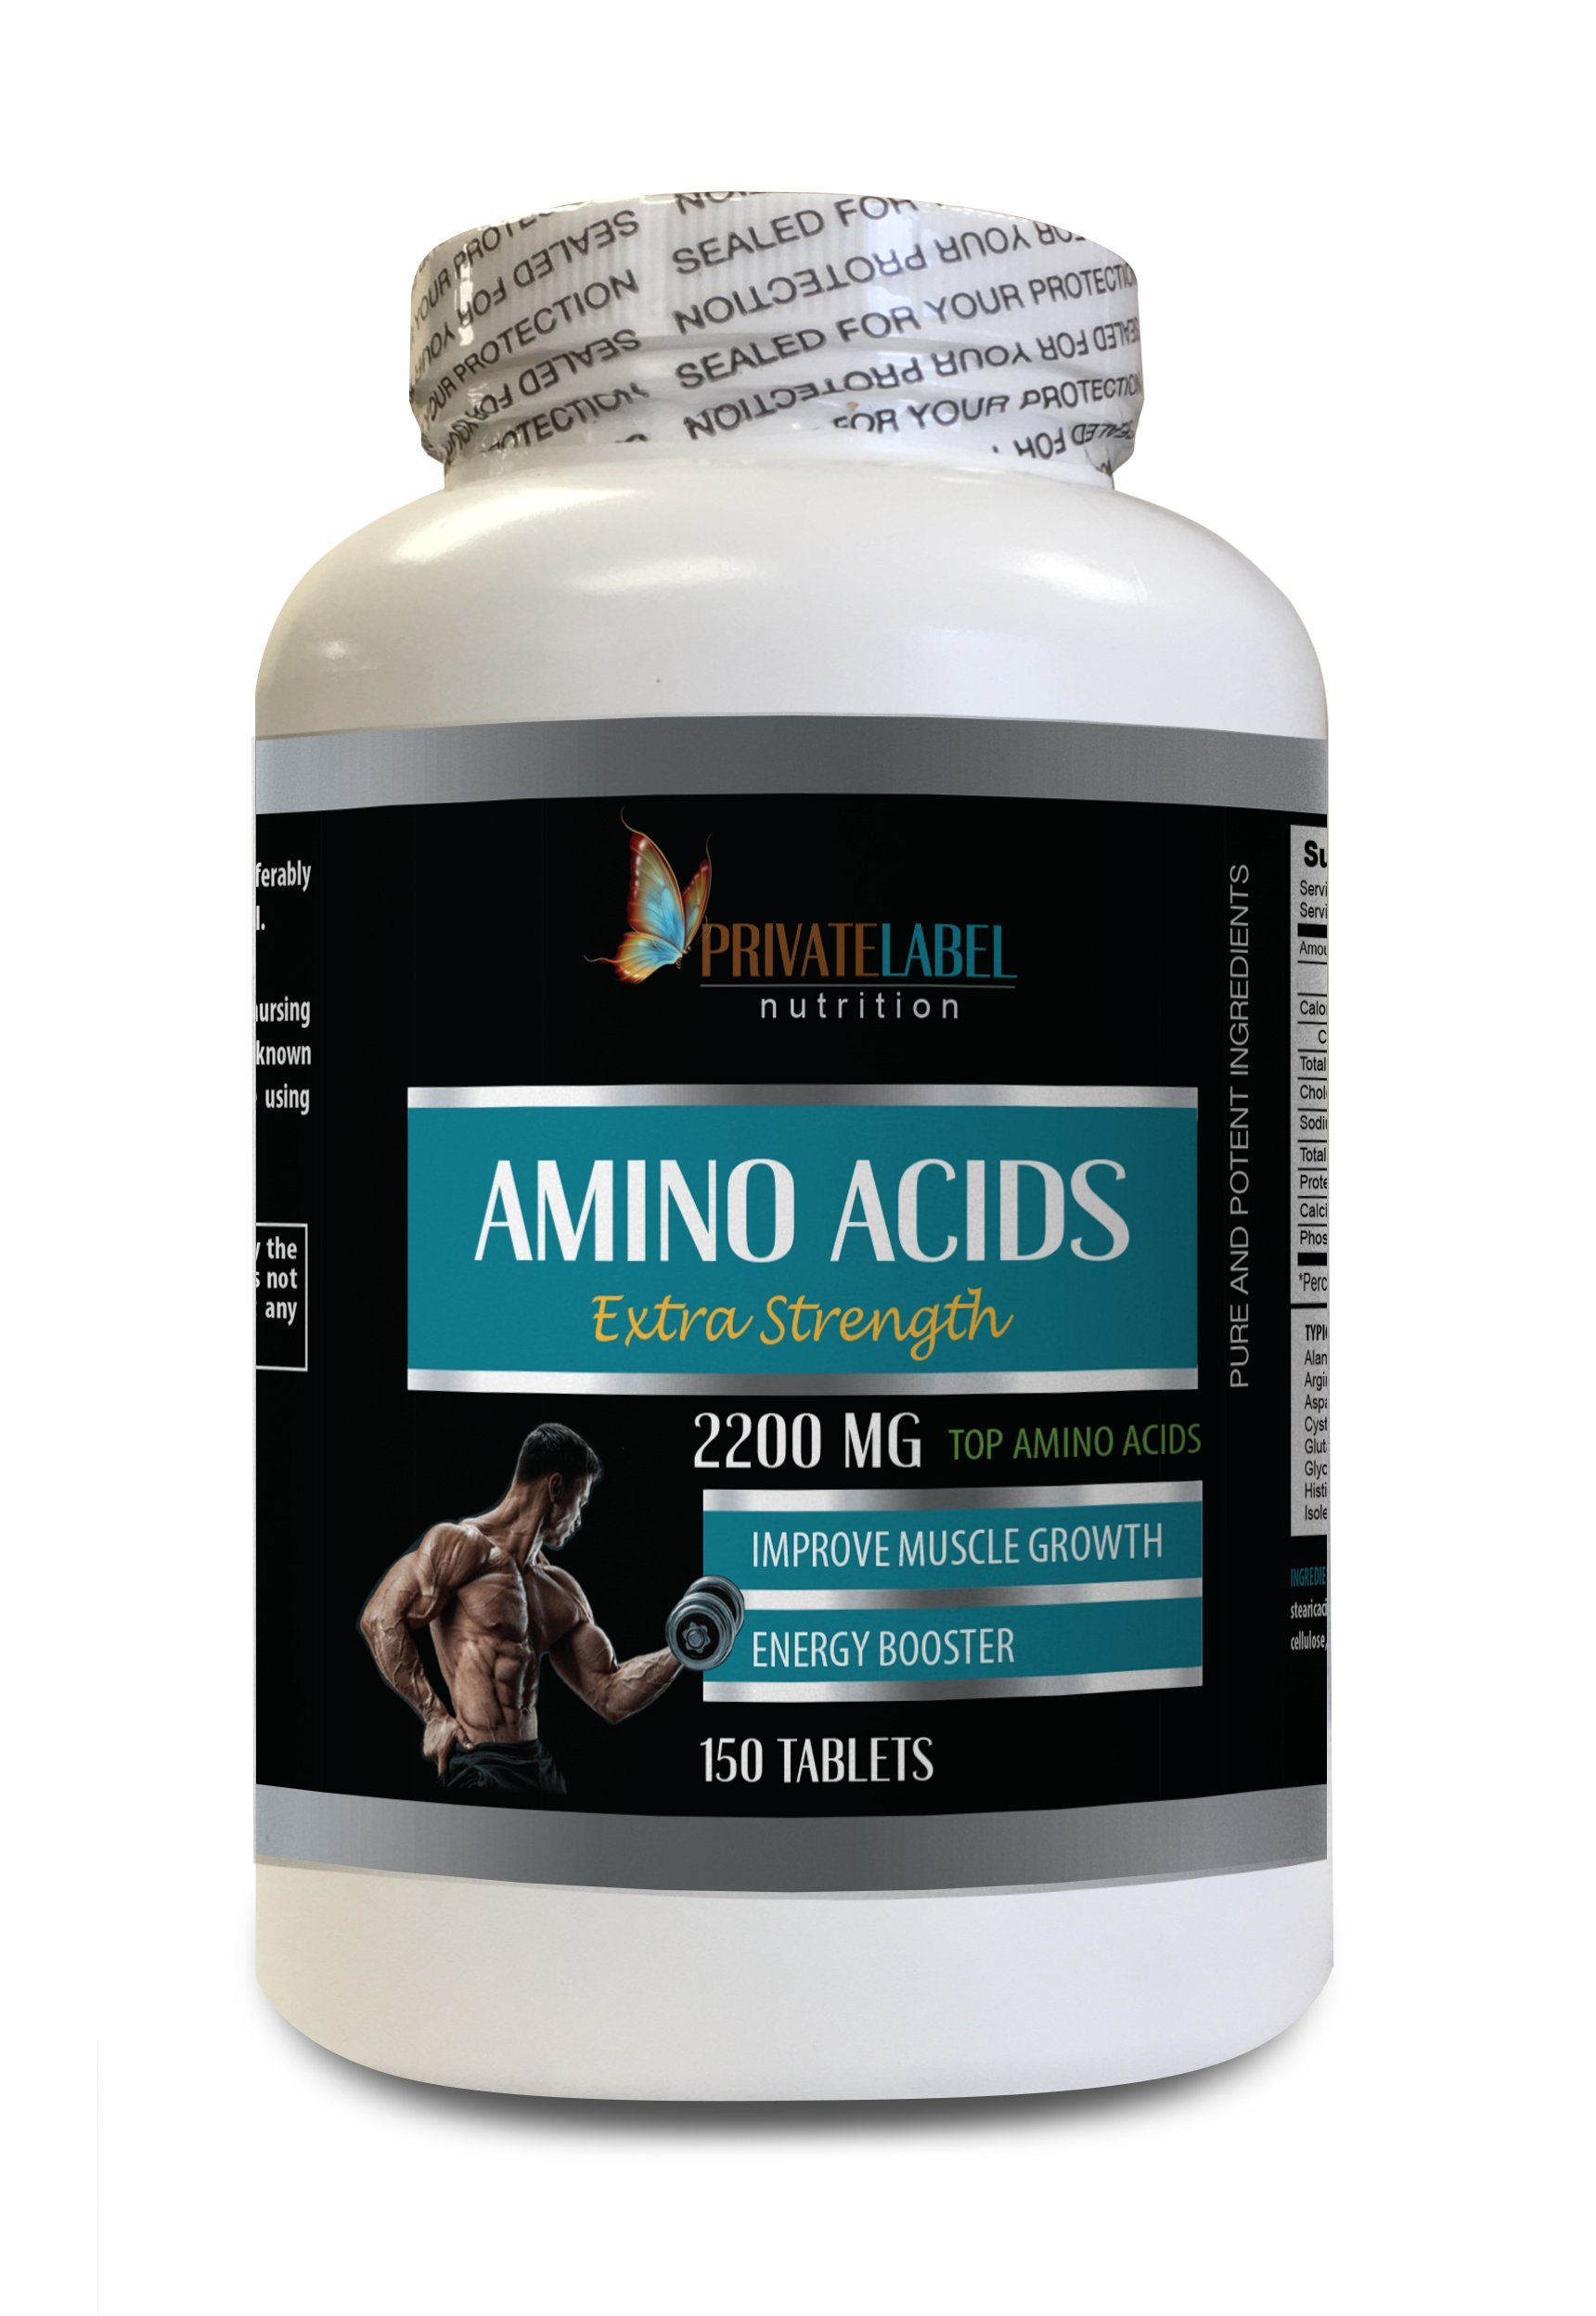 Muscle Building Supplements Best Muscle Building Supplements - Amino ACIDS Extra Strength 2200MG - Amino acids Supplements for Women - 1 Bottle 150 Tablets